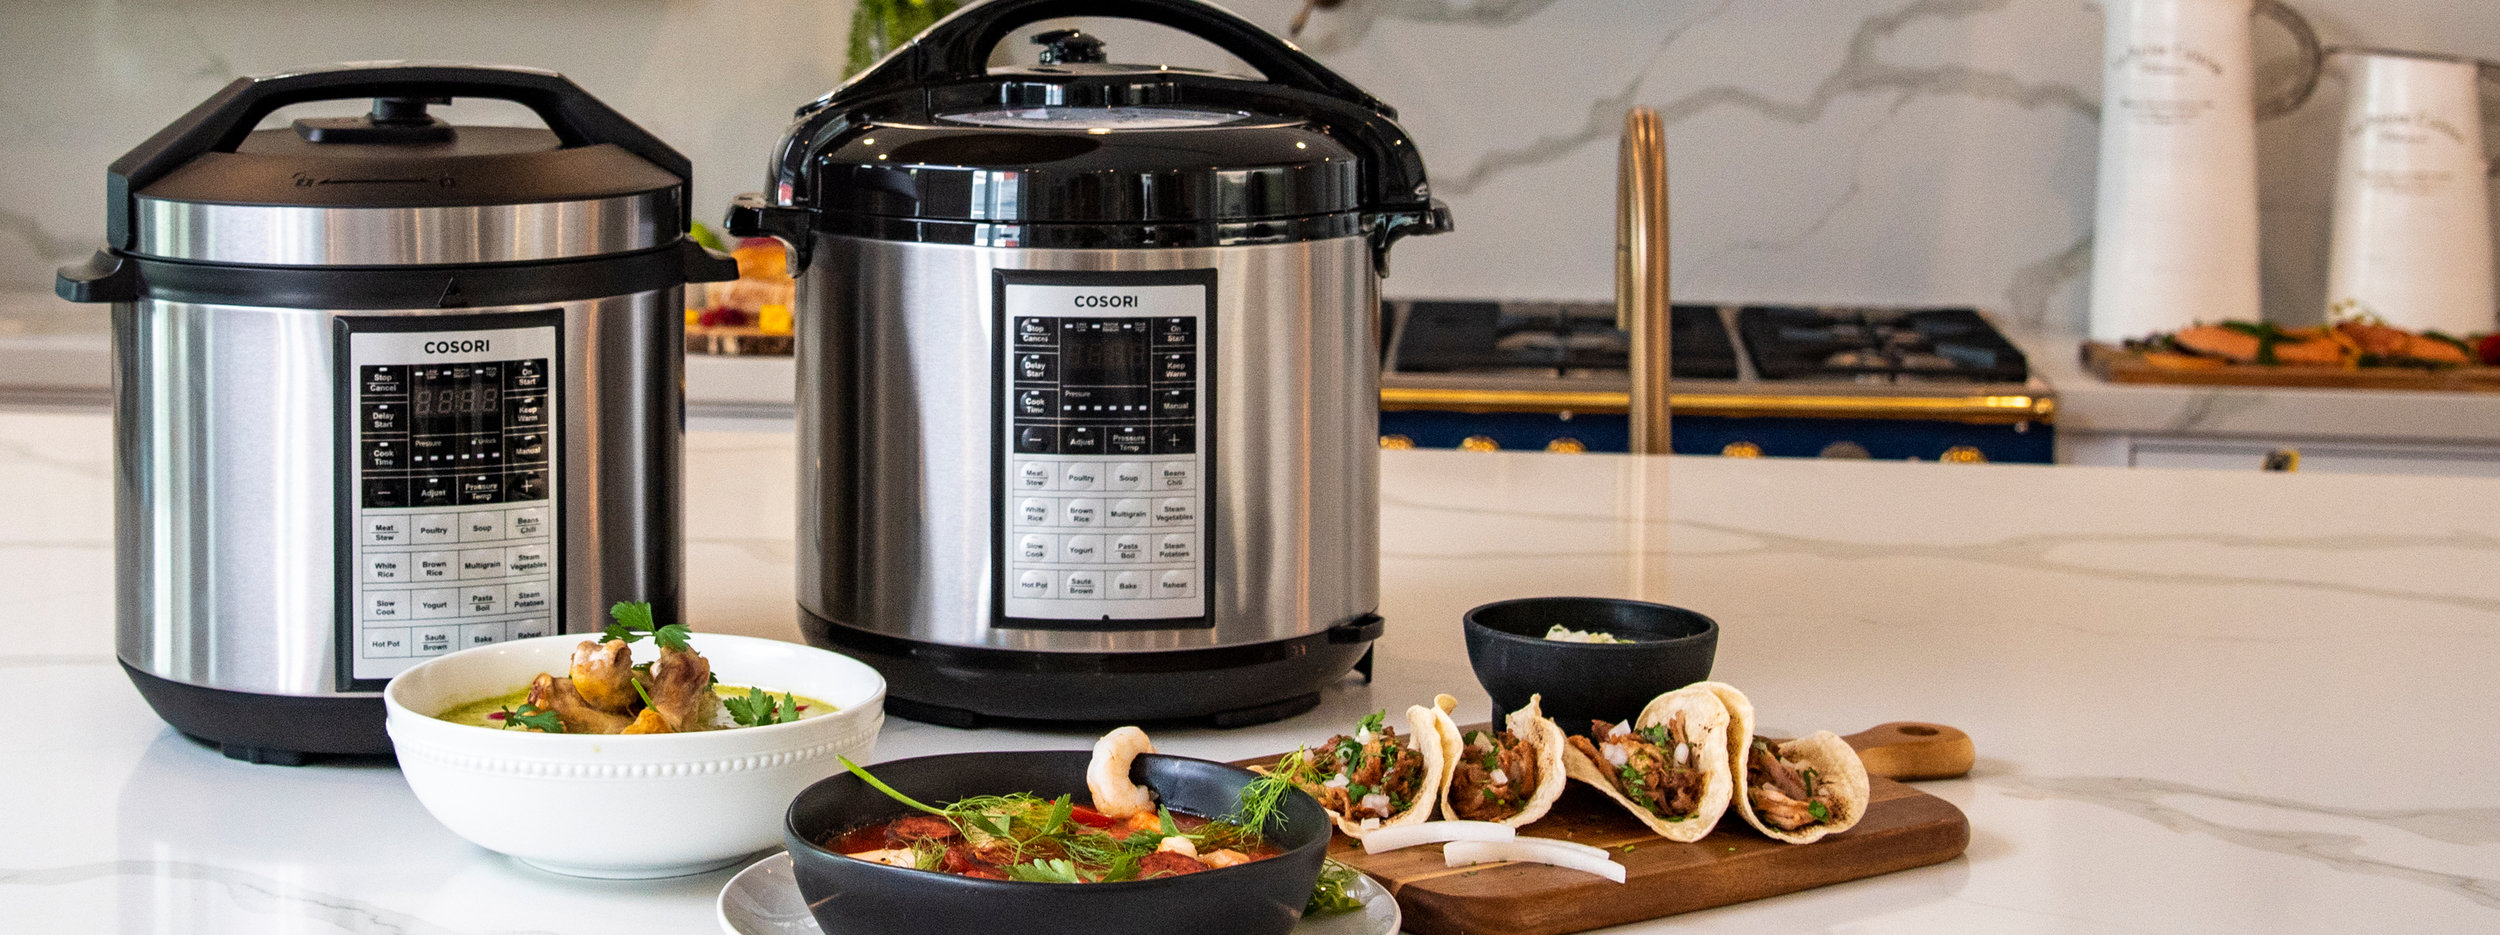 These recipes were made for Cosori Premium Pressure Cooker models    CP016-PC    and    CP018-PC   .